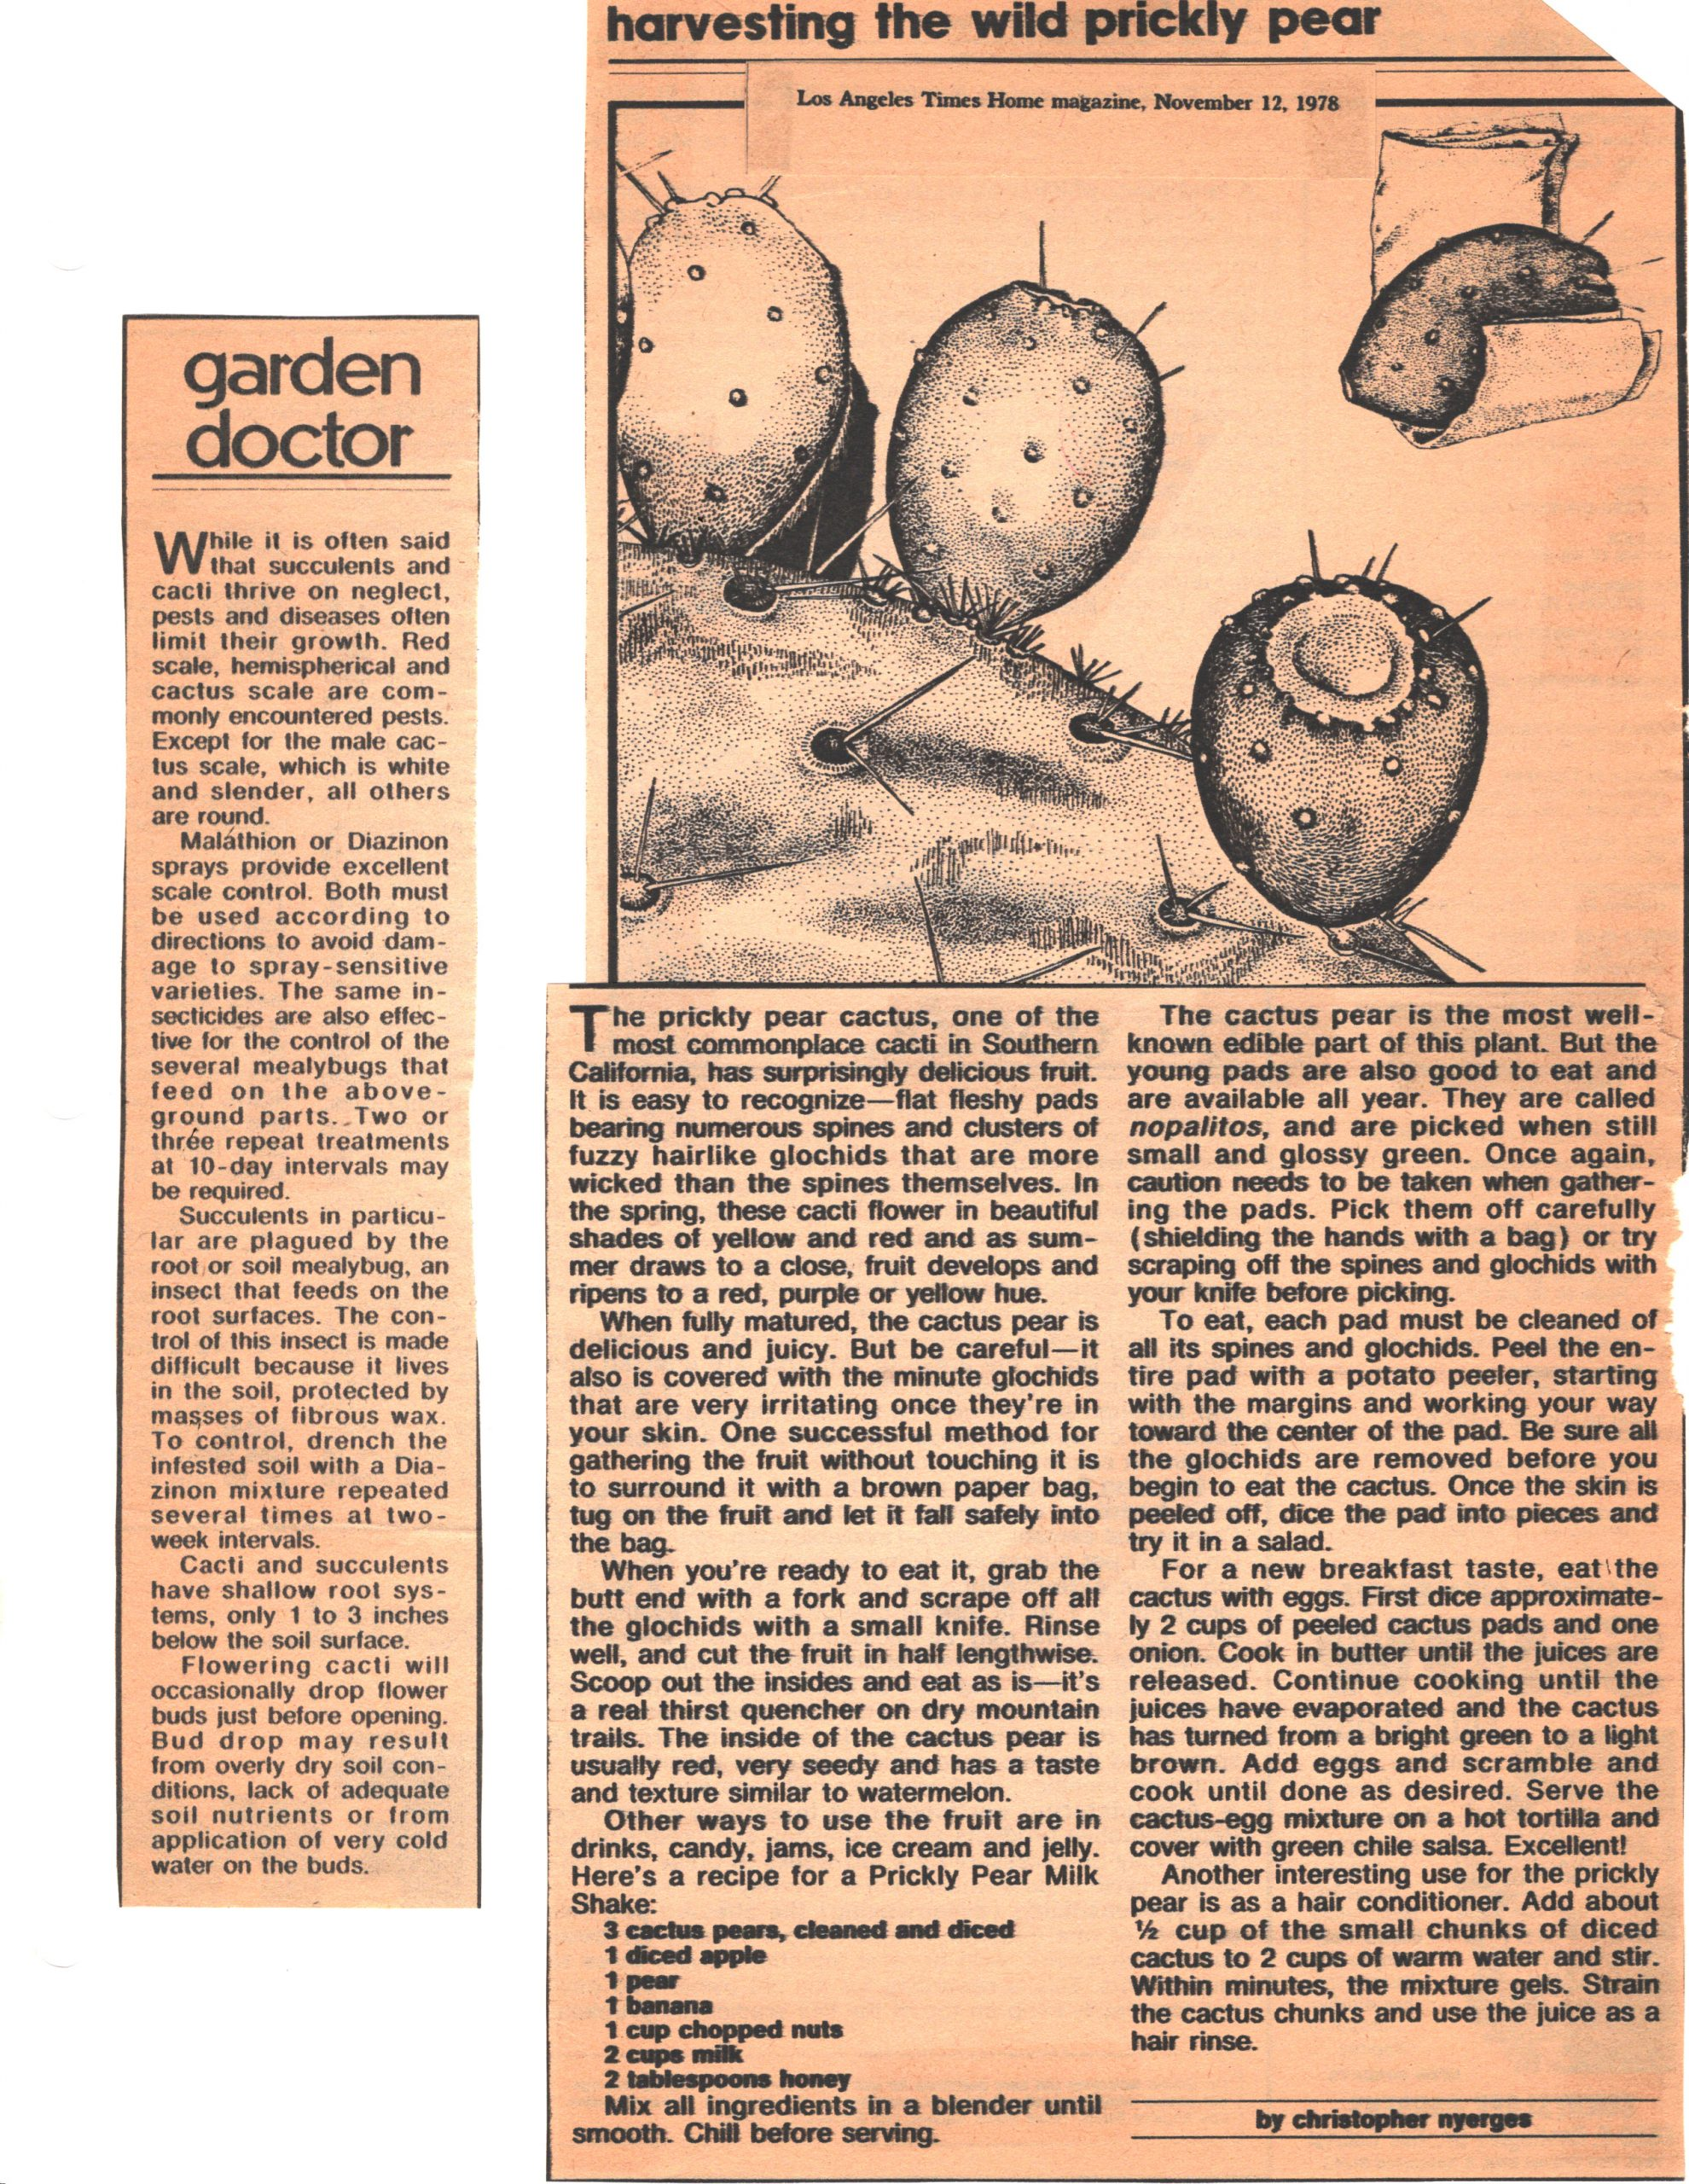 SCCSS-Cuttings-1978-11-12